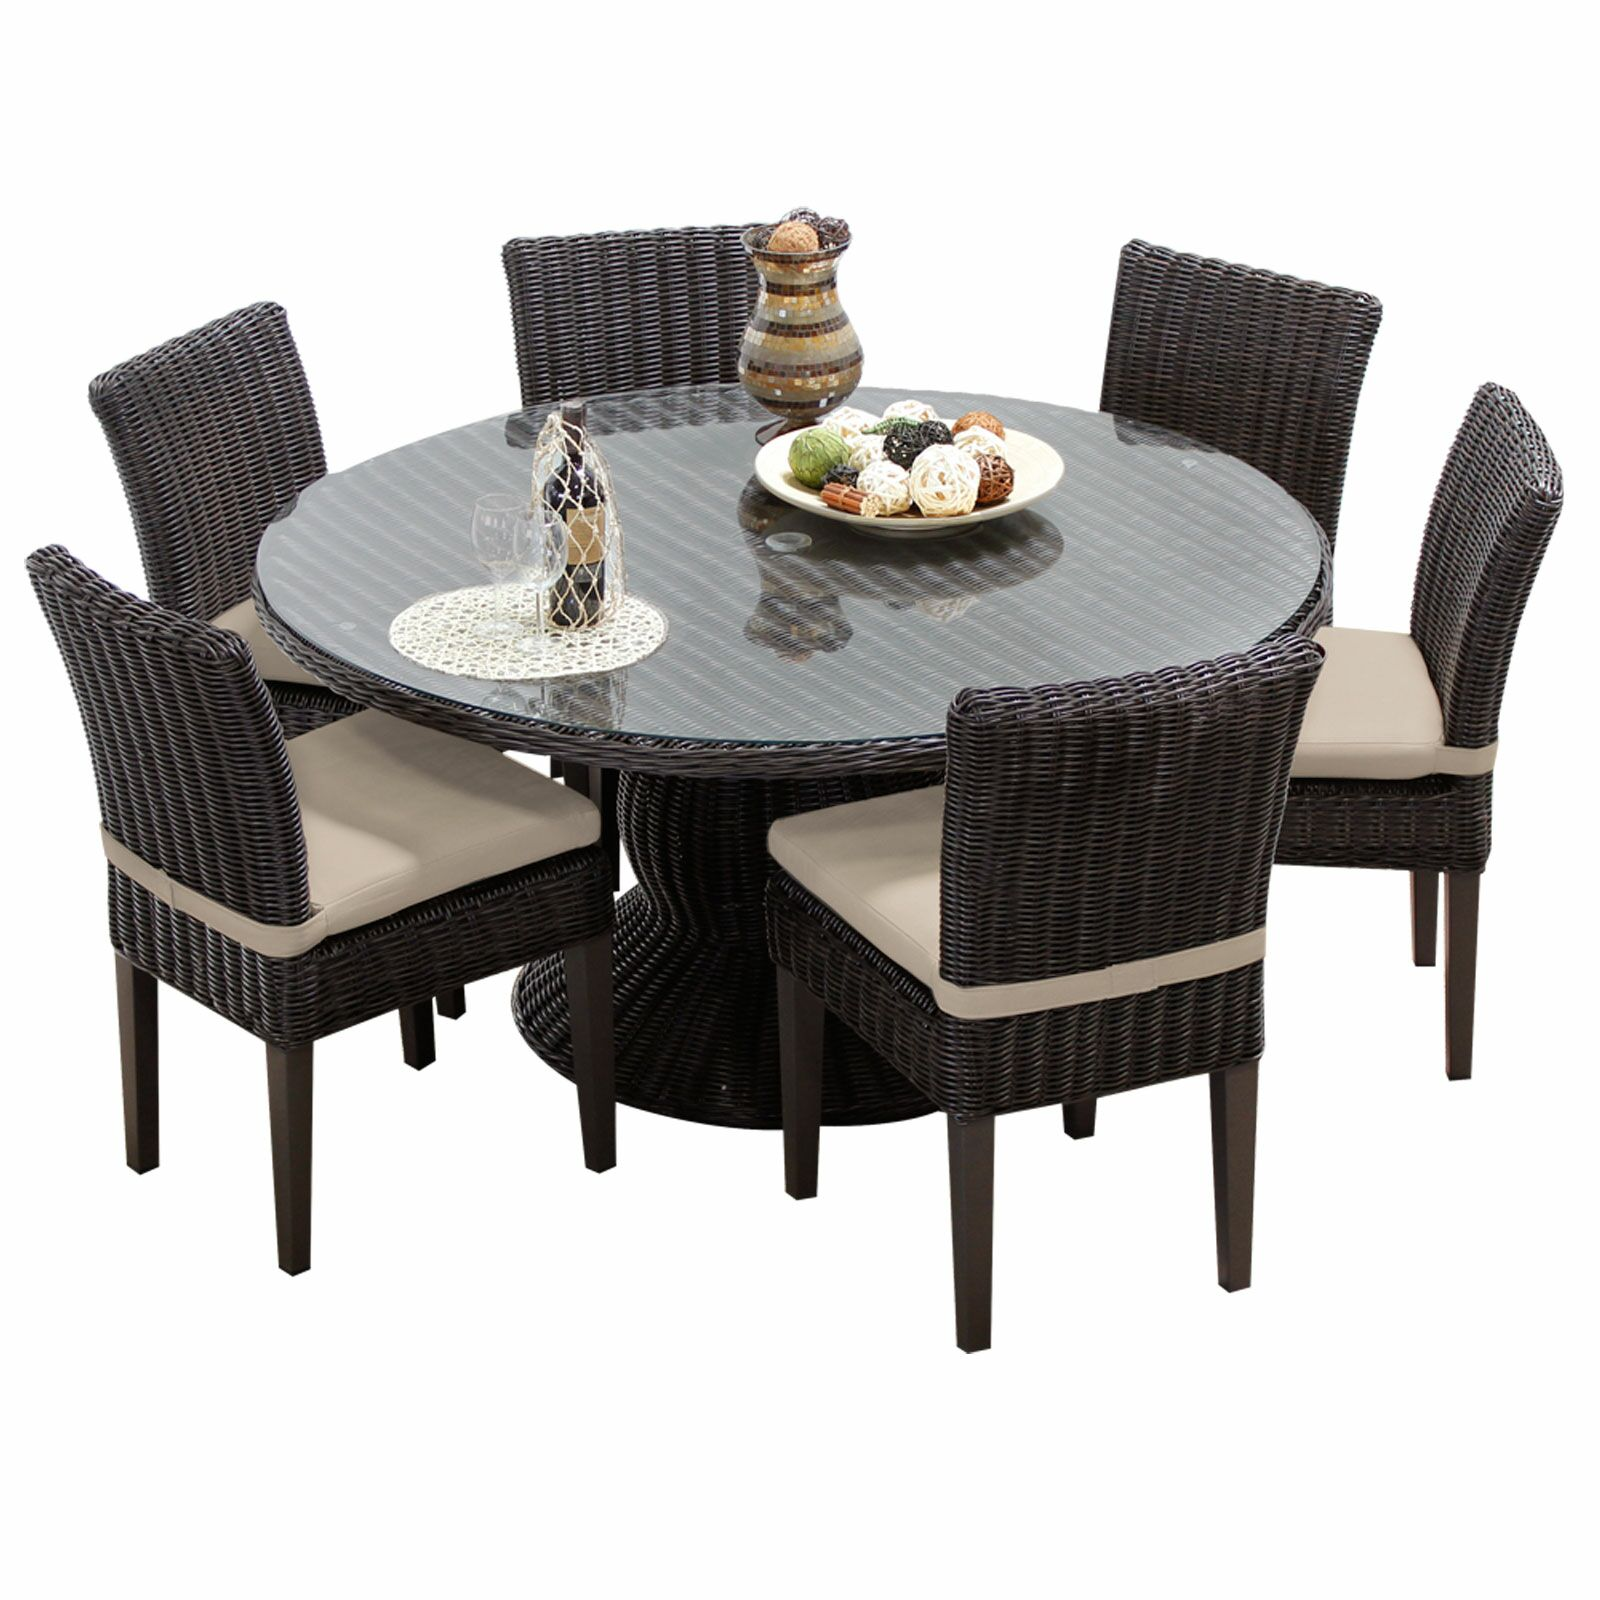 Eldredge 7 Piece Dining Set with Cushions Color: Beige